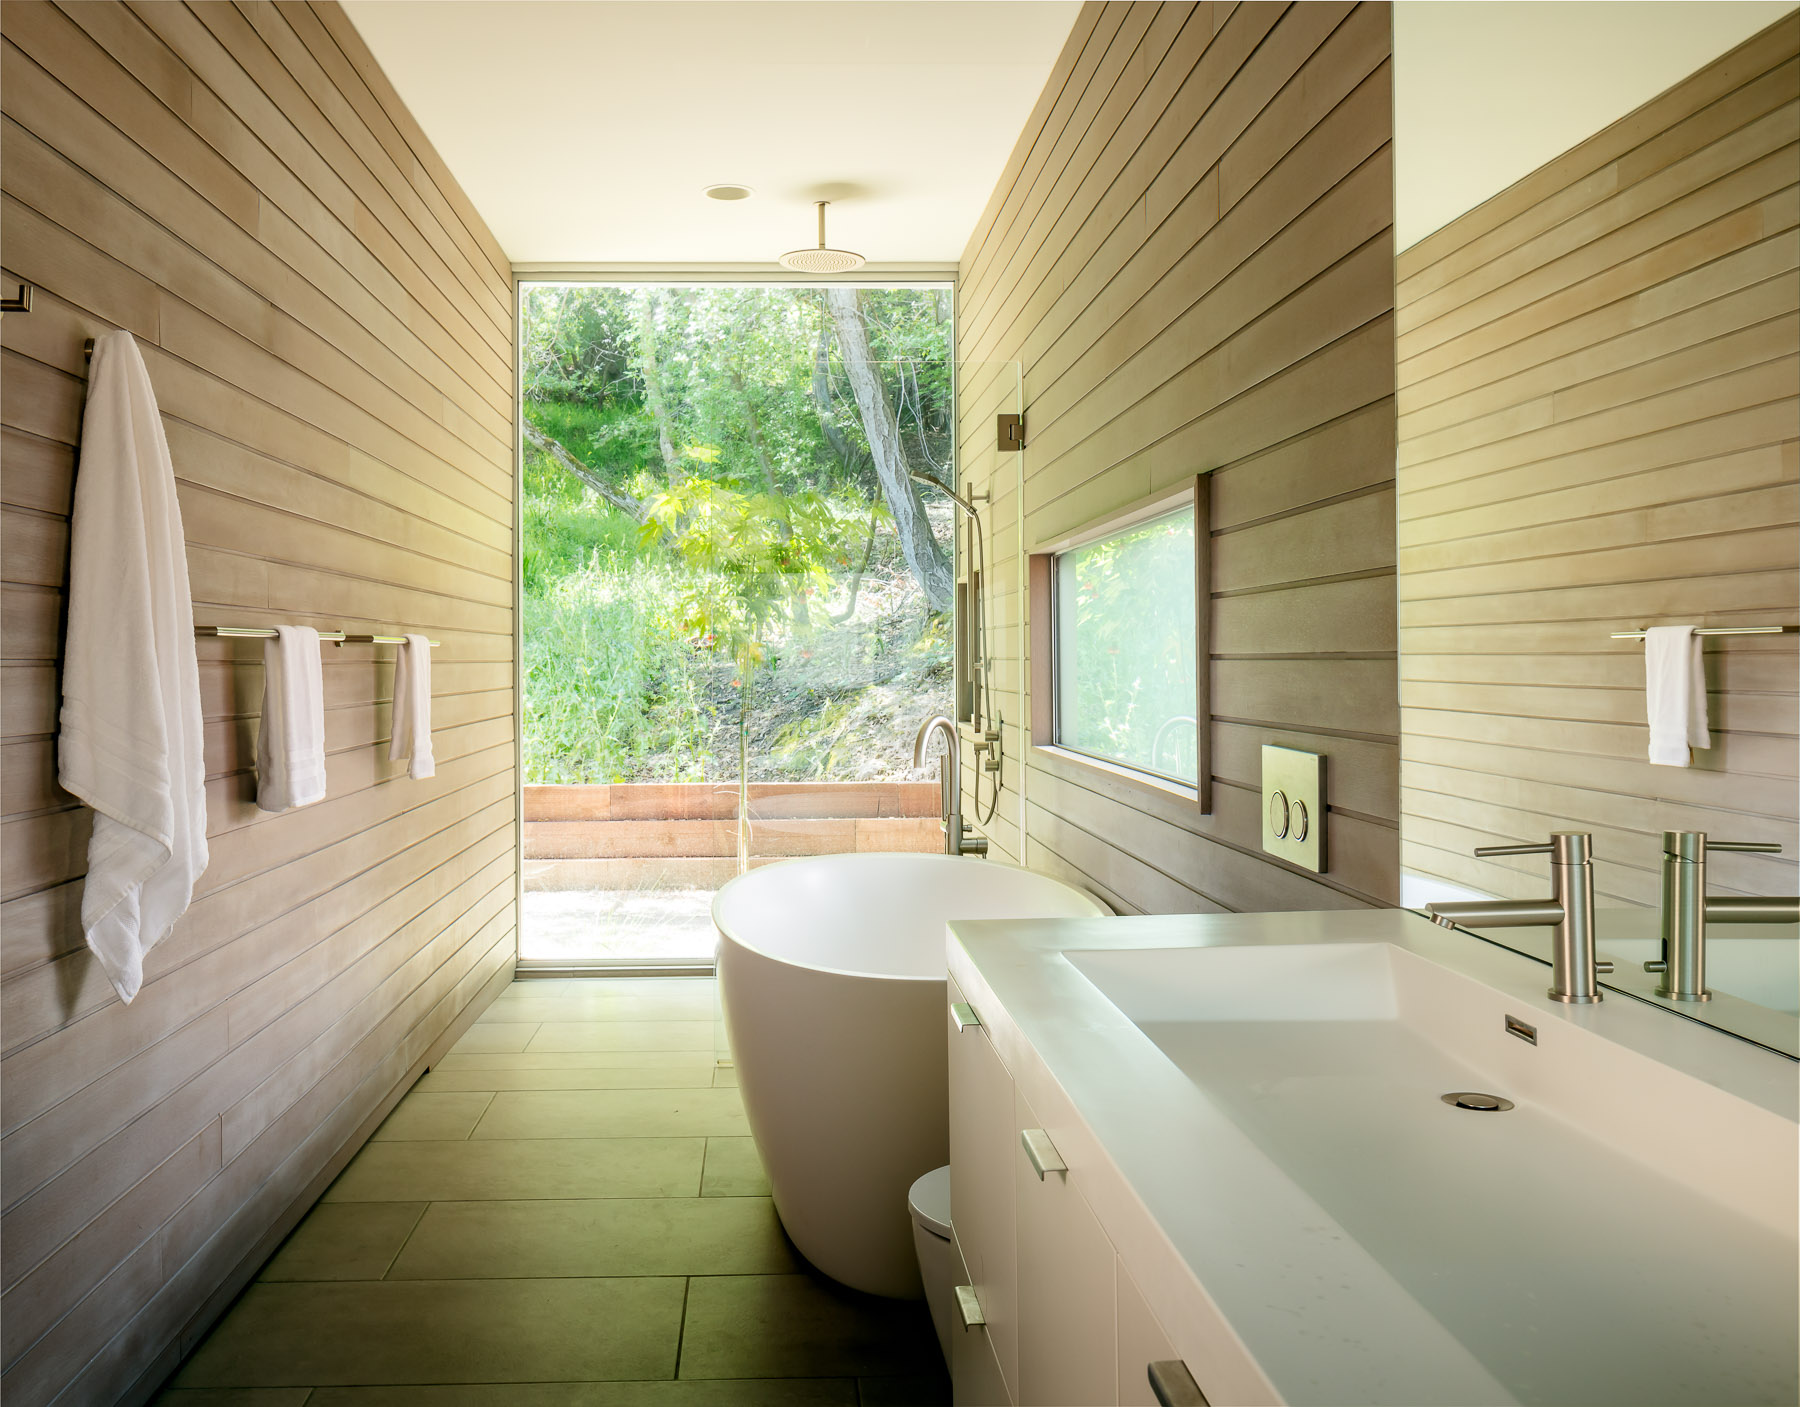 fernwood way residence kitchen & bath